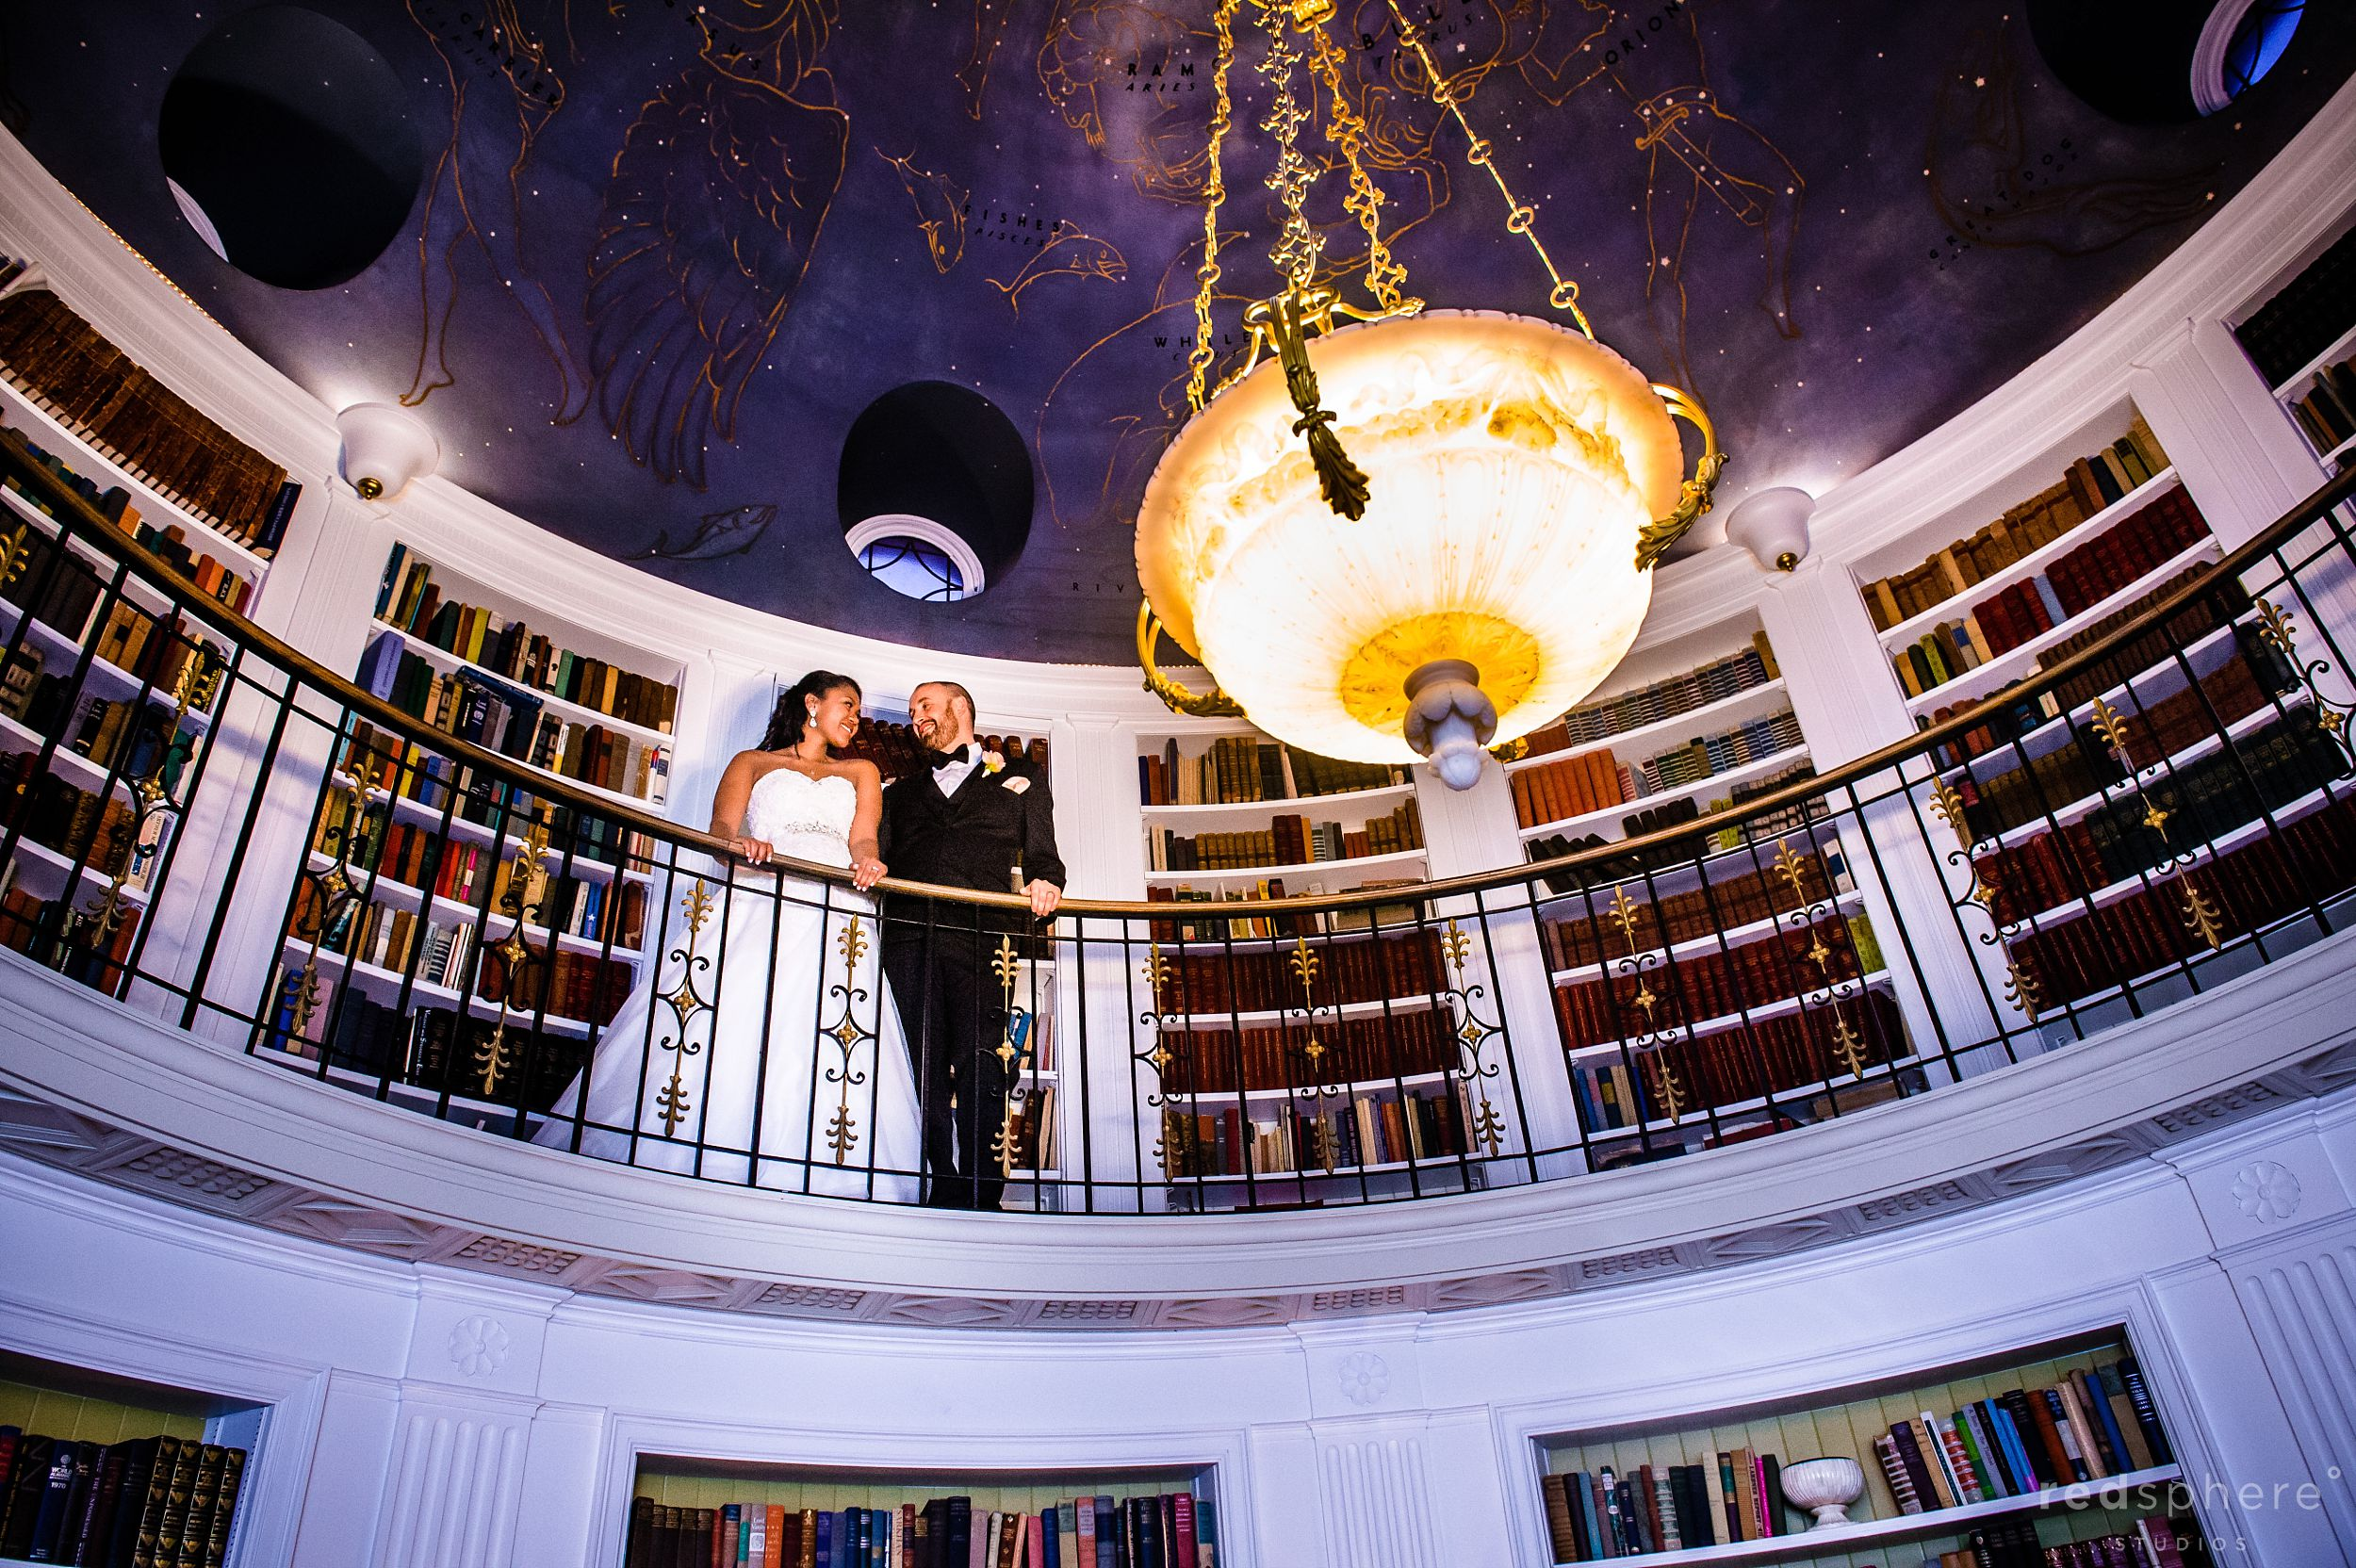 Bride and Groom on Top Level of Bookcase at Fairmont Hotel Penthouse Suite